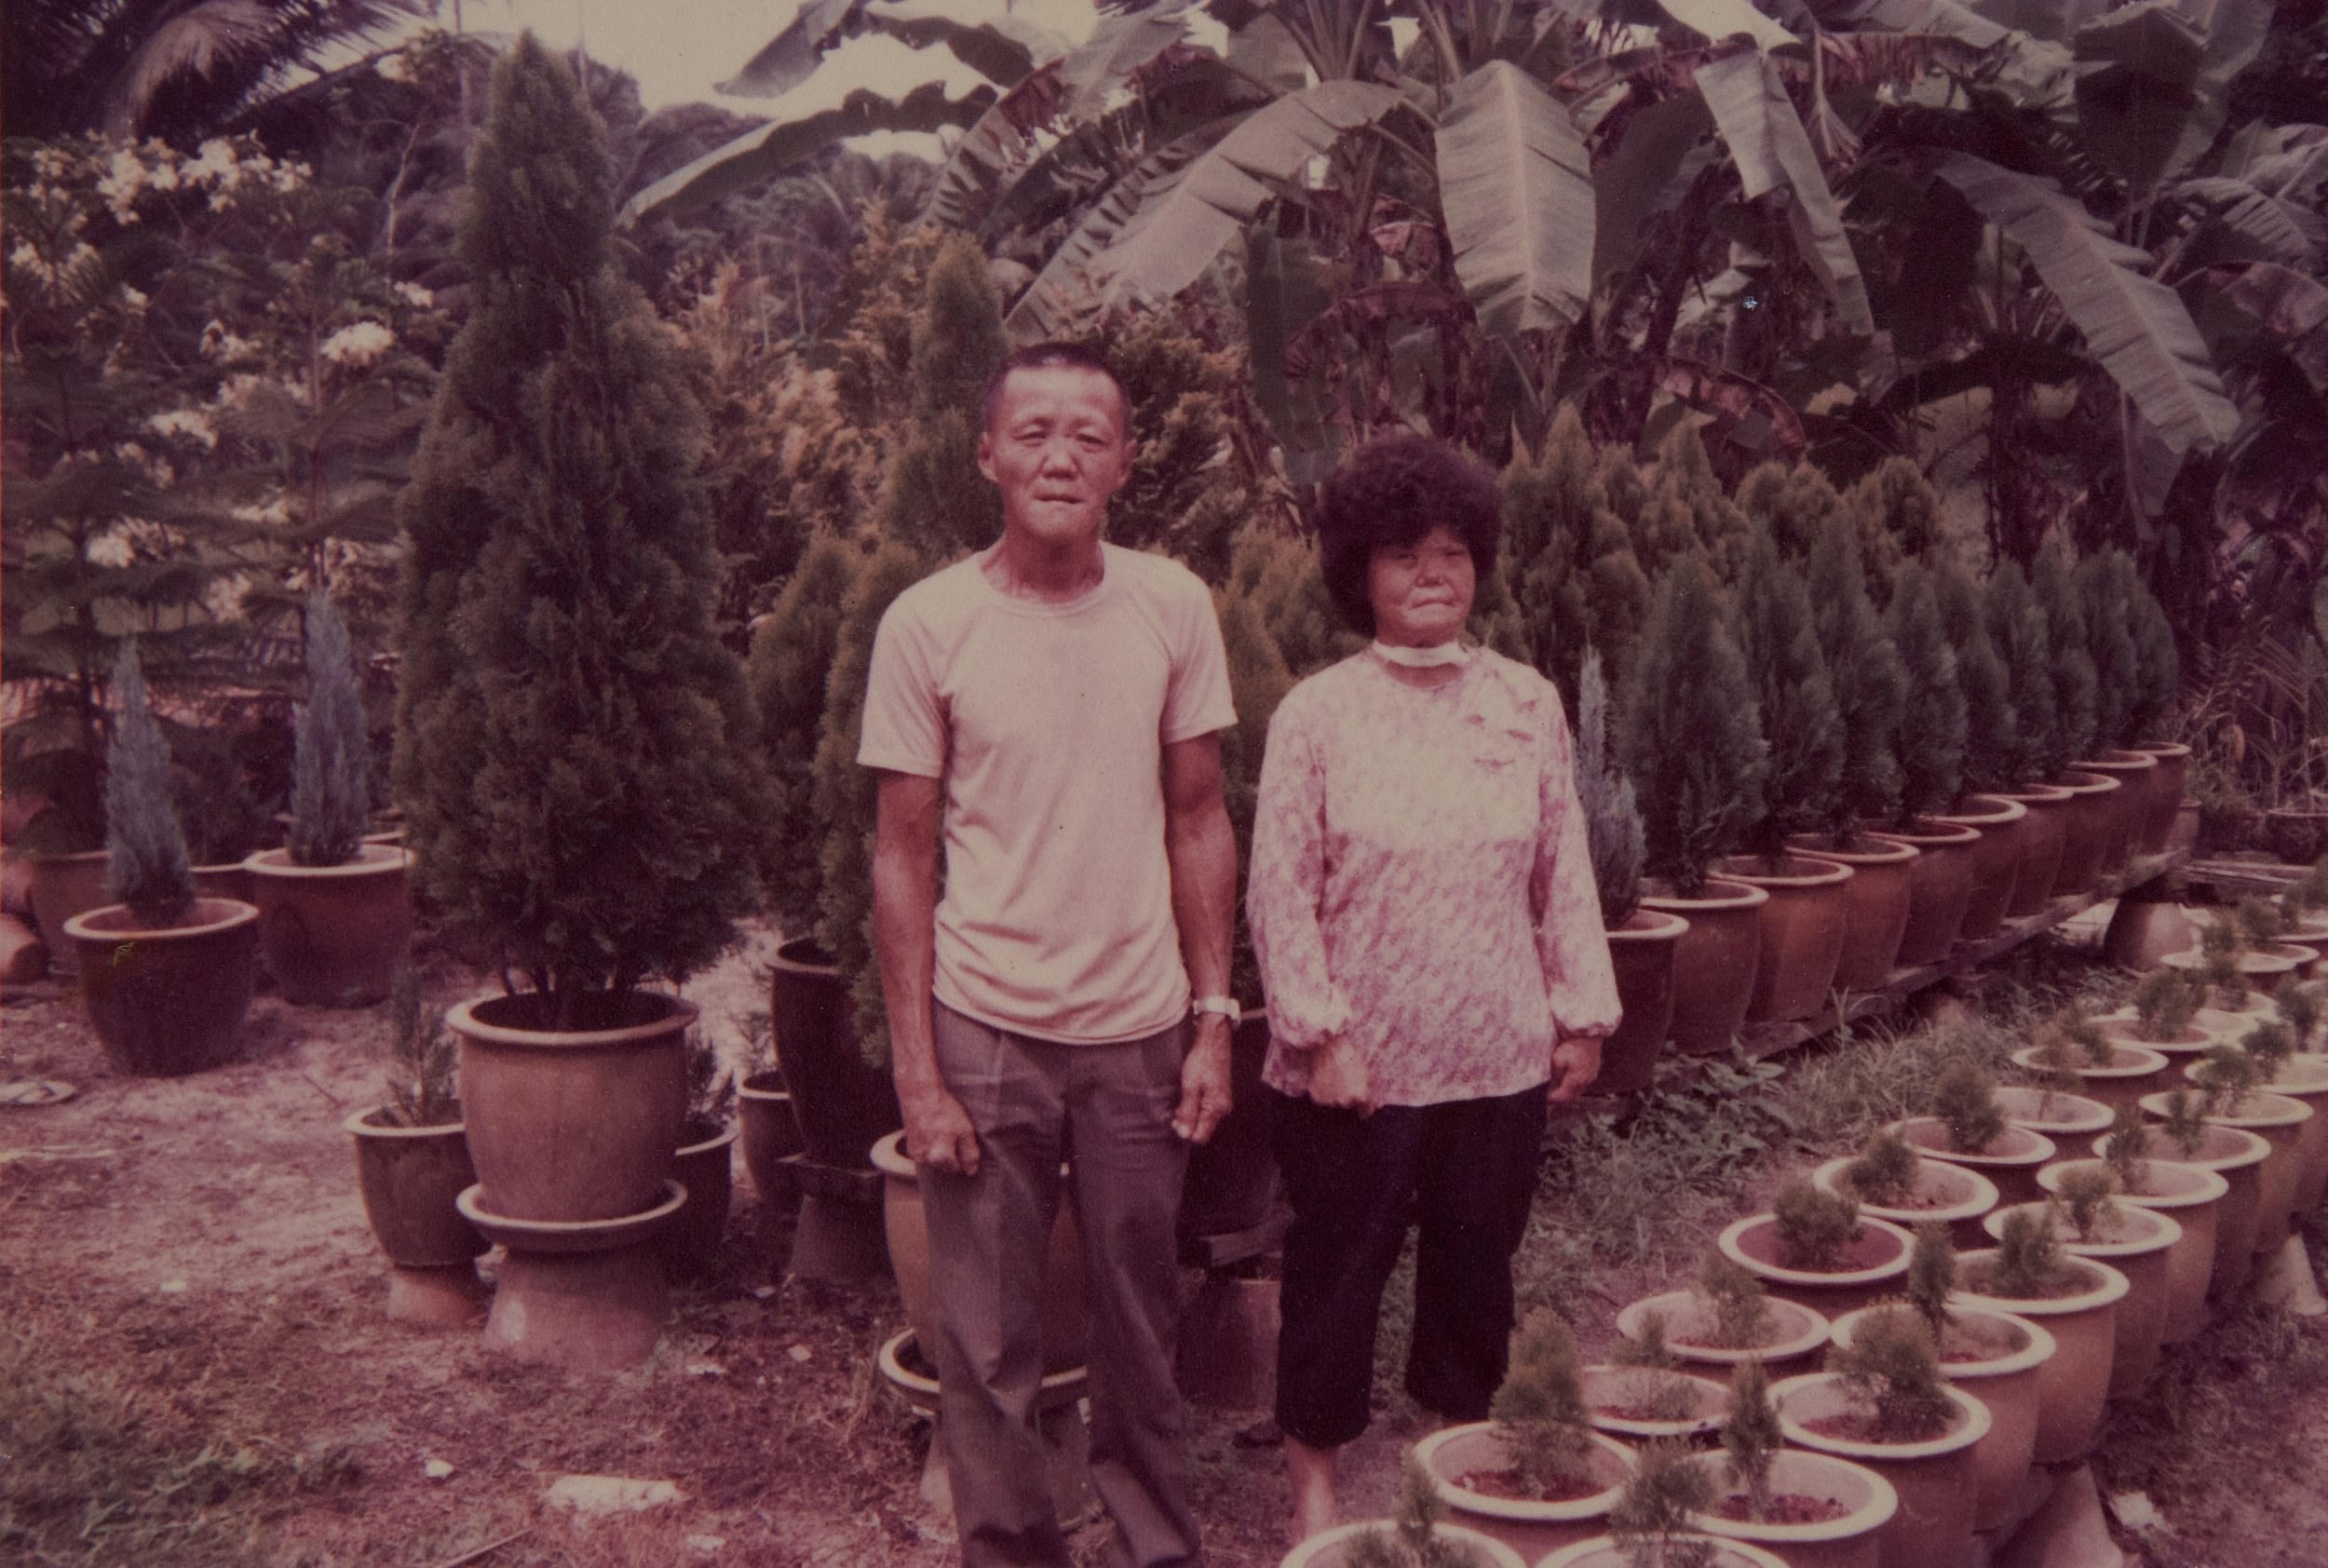 Heng and her husband used to run a nursery in the early years. (photo courtesy of Heng Pak Nang)